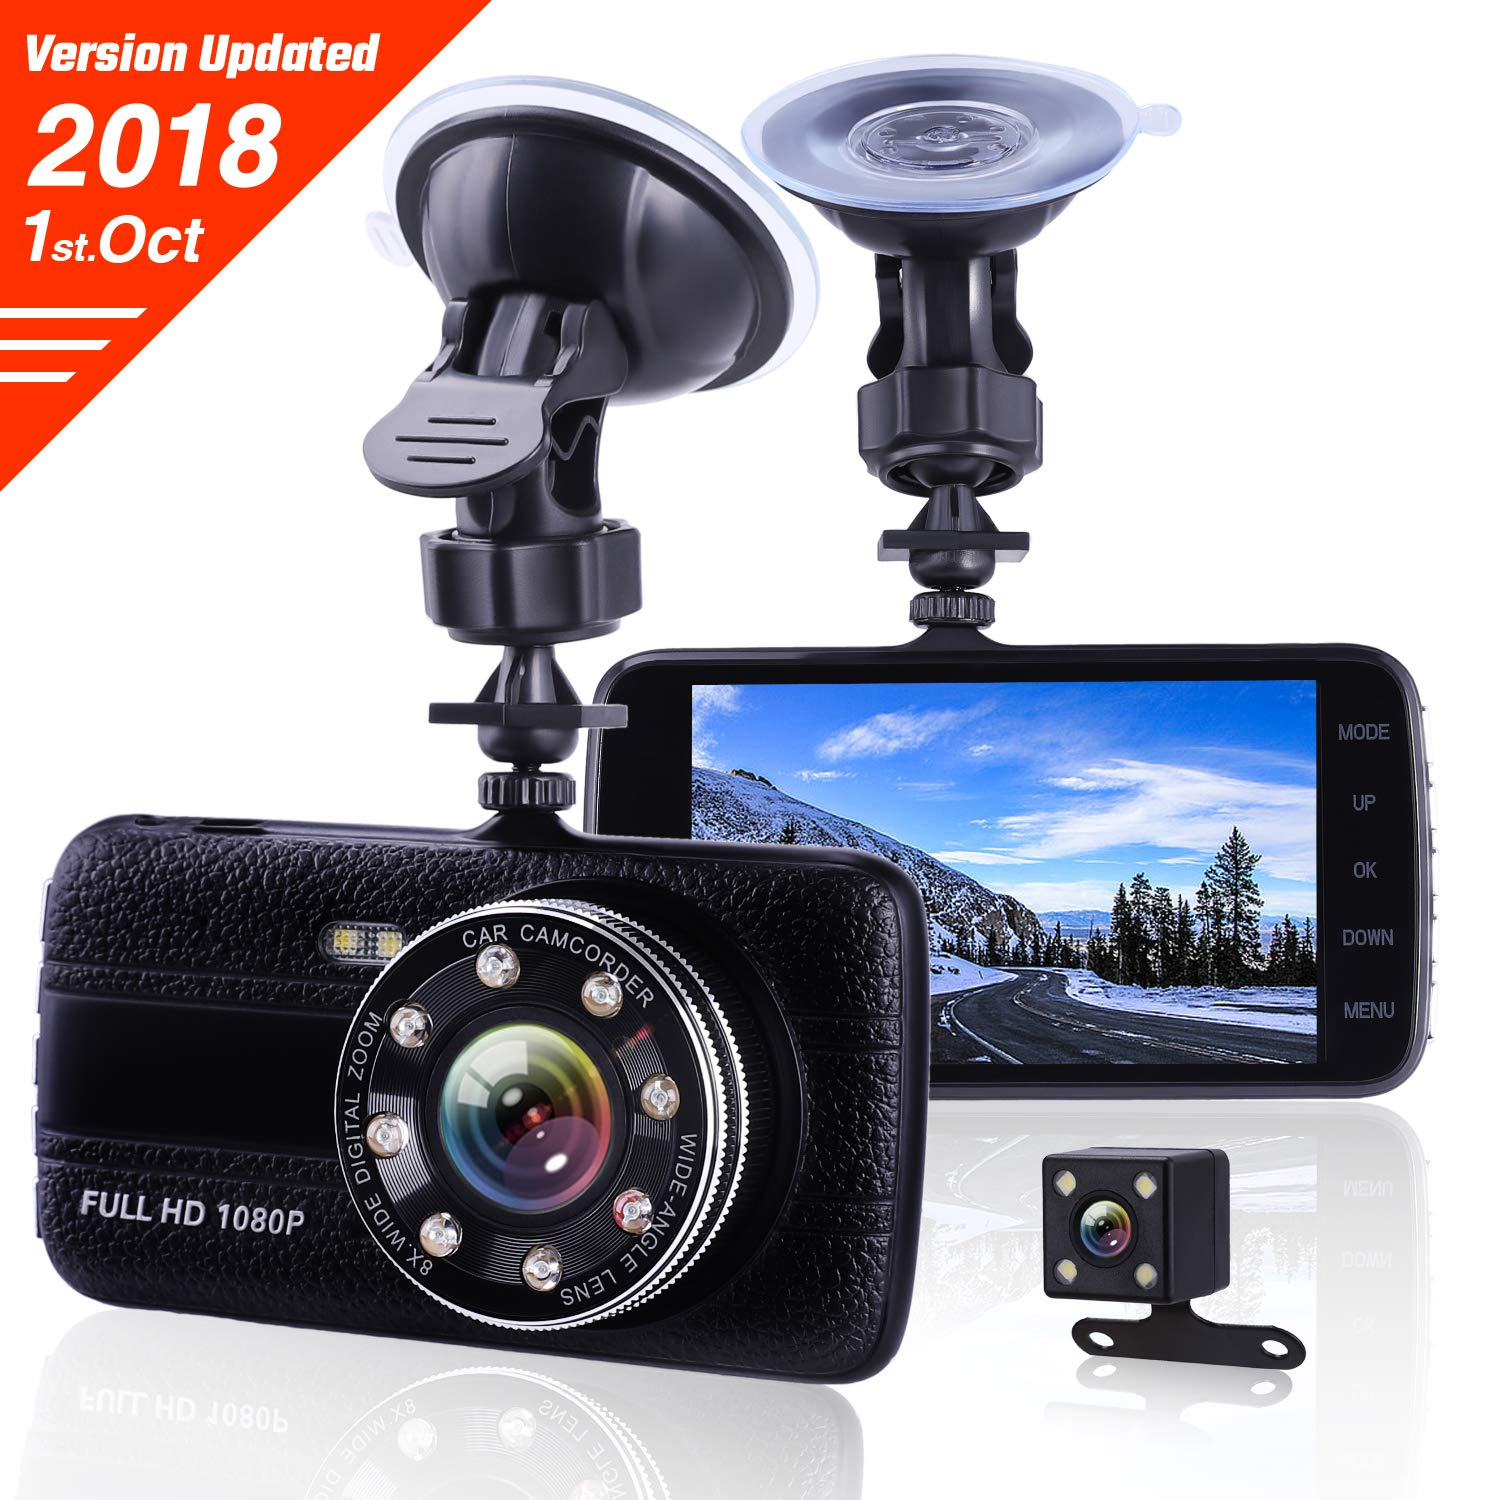 Lamoe EC013 Dash Cam Front And Rear Dual Camera,Superior Night Vision With 8 Lights Dashcams,1080P FHD Dashcam with G-sensor, Loop Recording, Motion Detection, Parking Monitoring, Black, 4inches Car Camera001